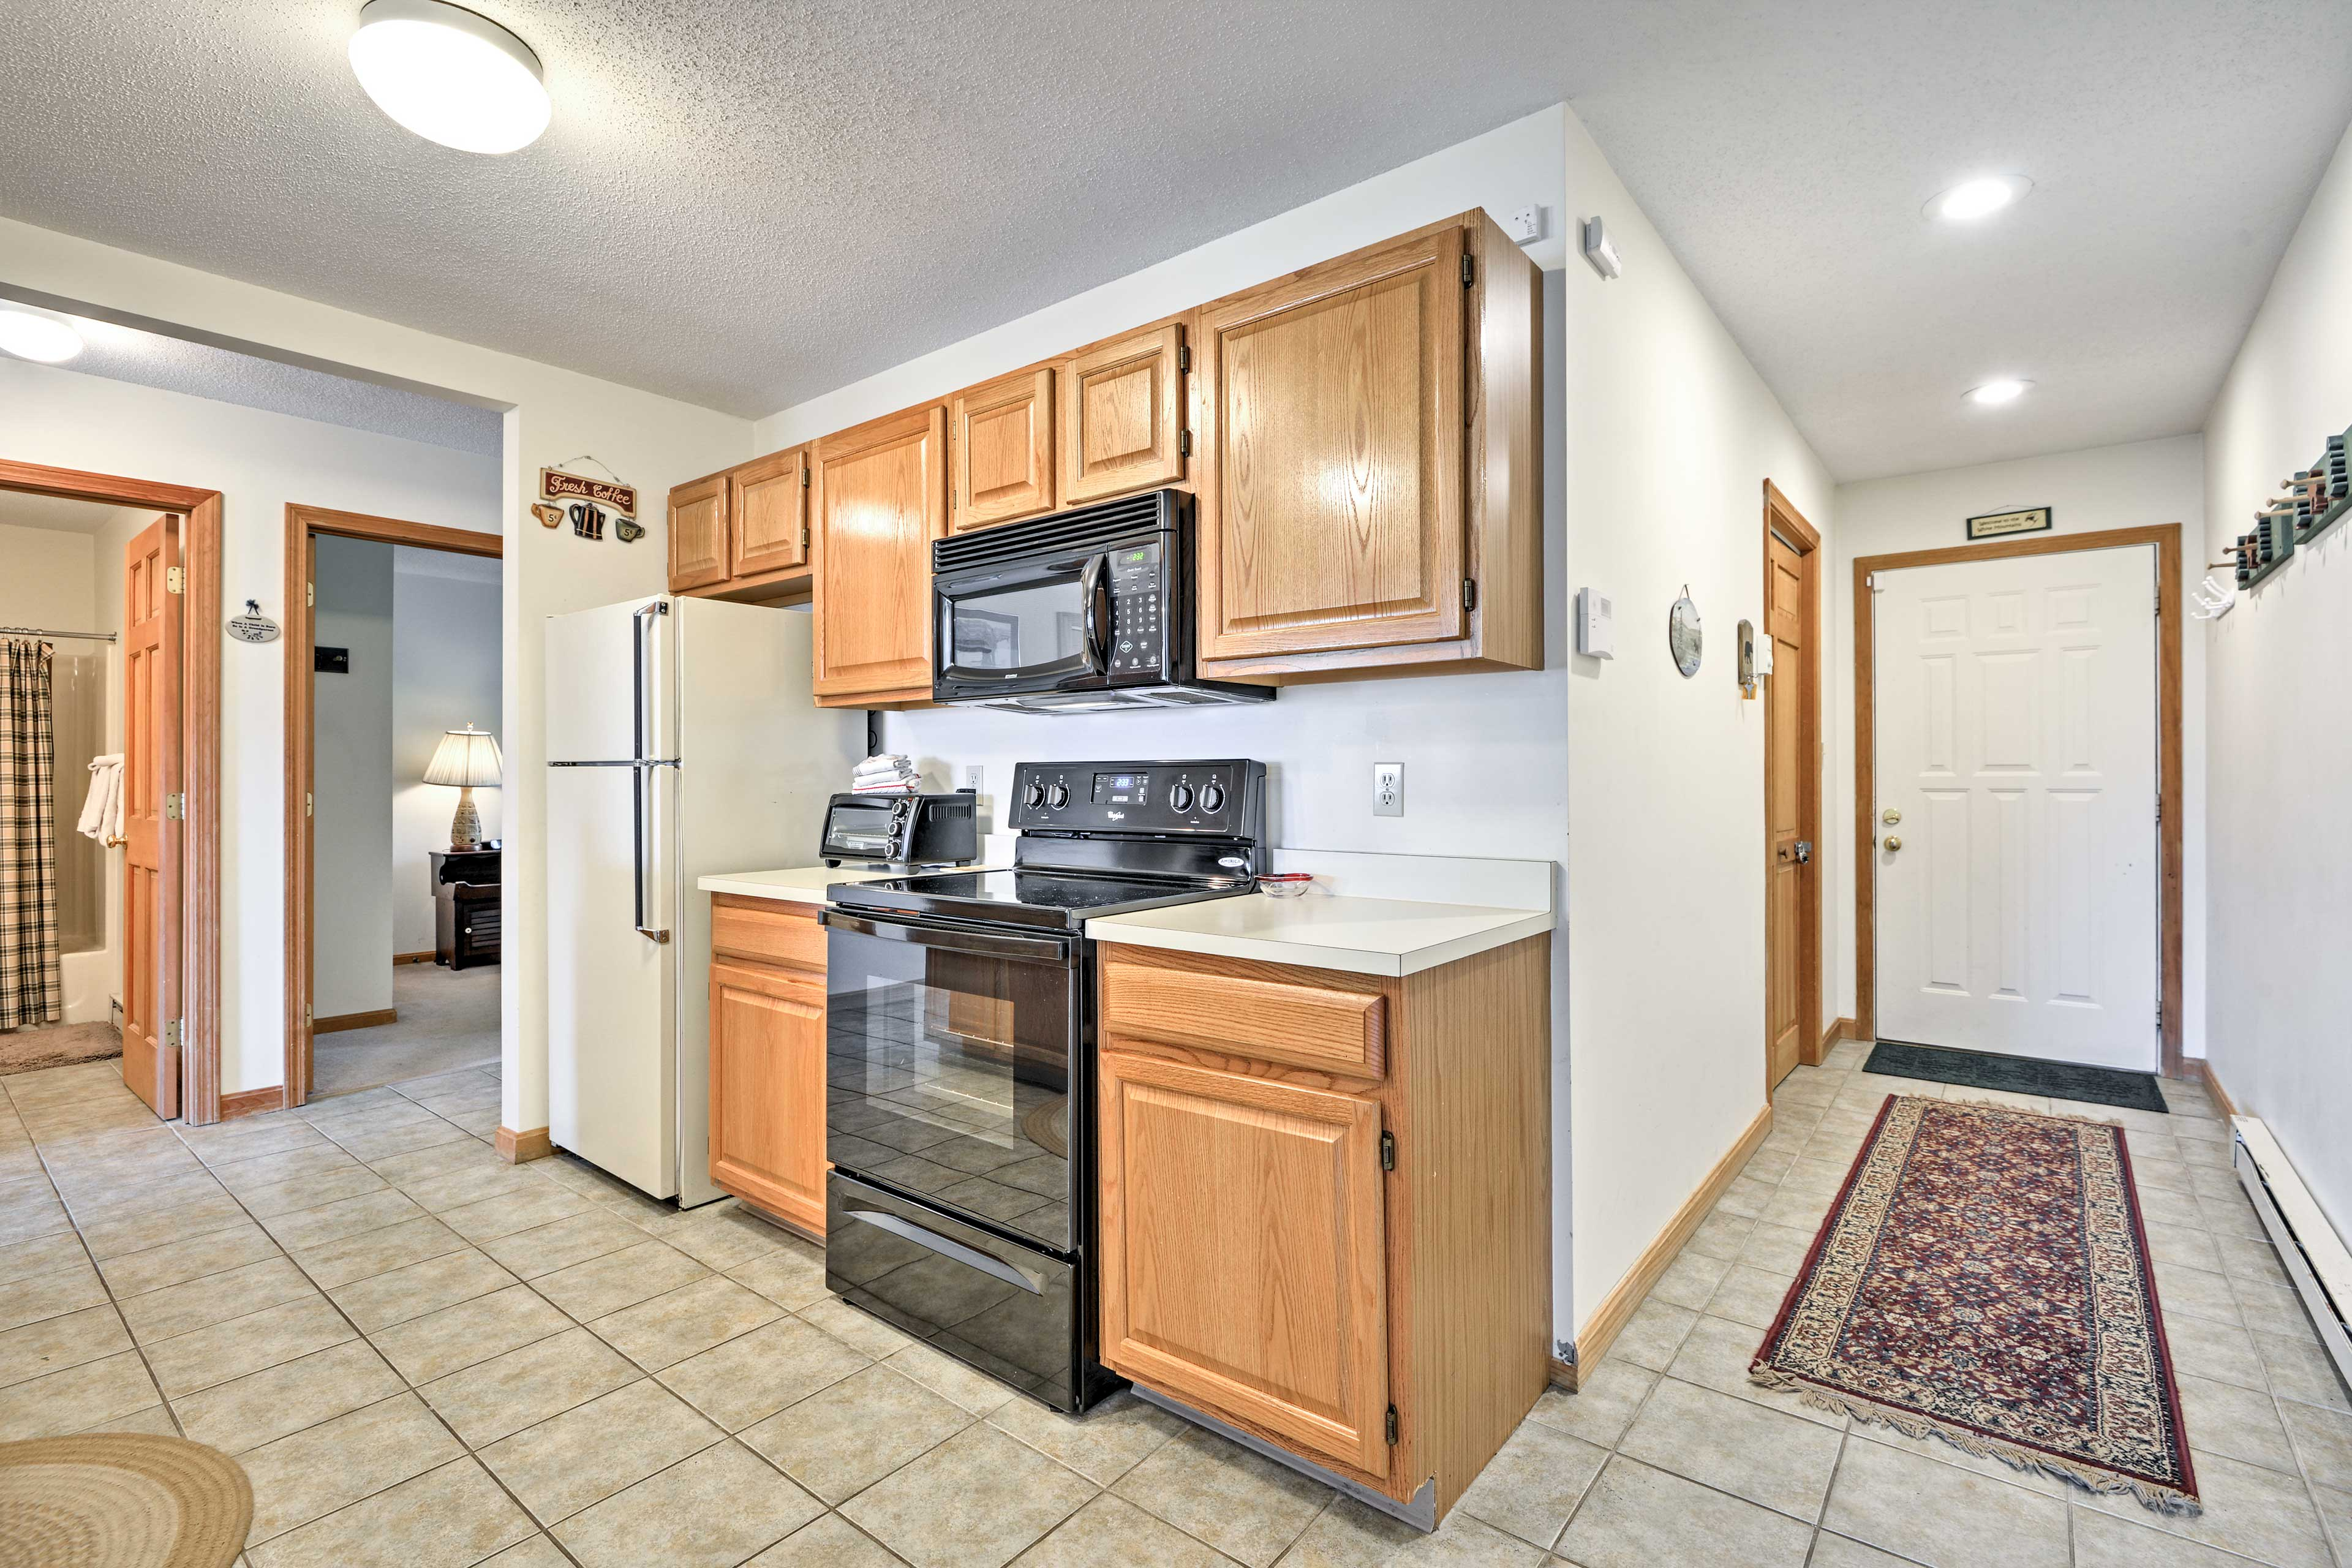 The kitchen has everything you could ask for!